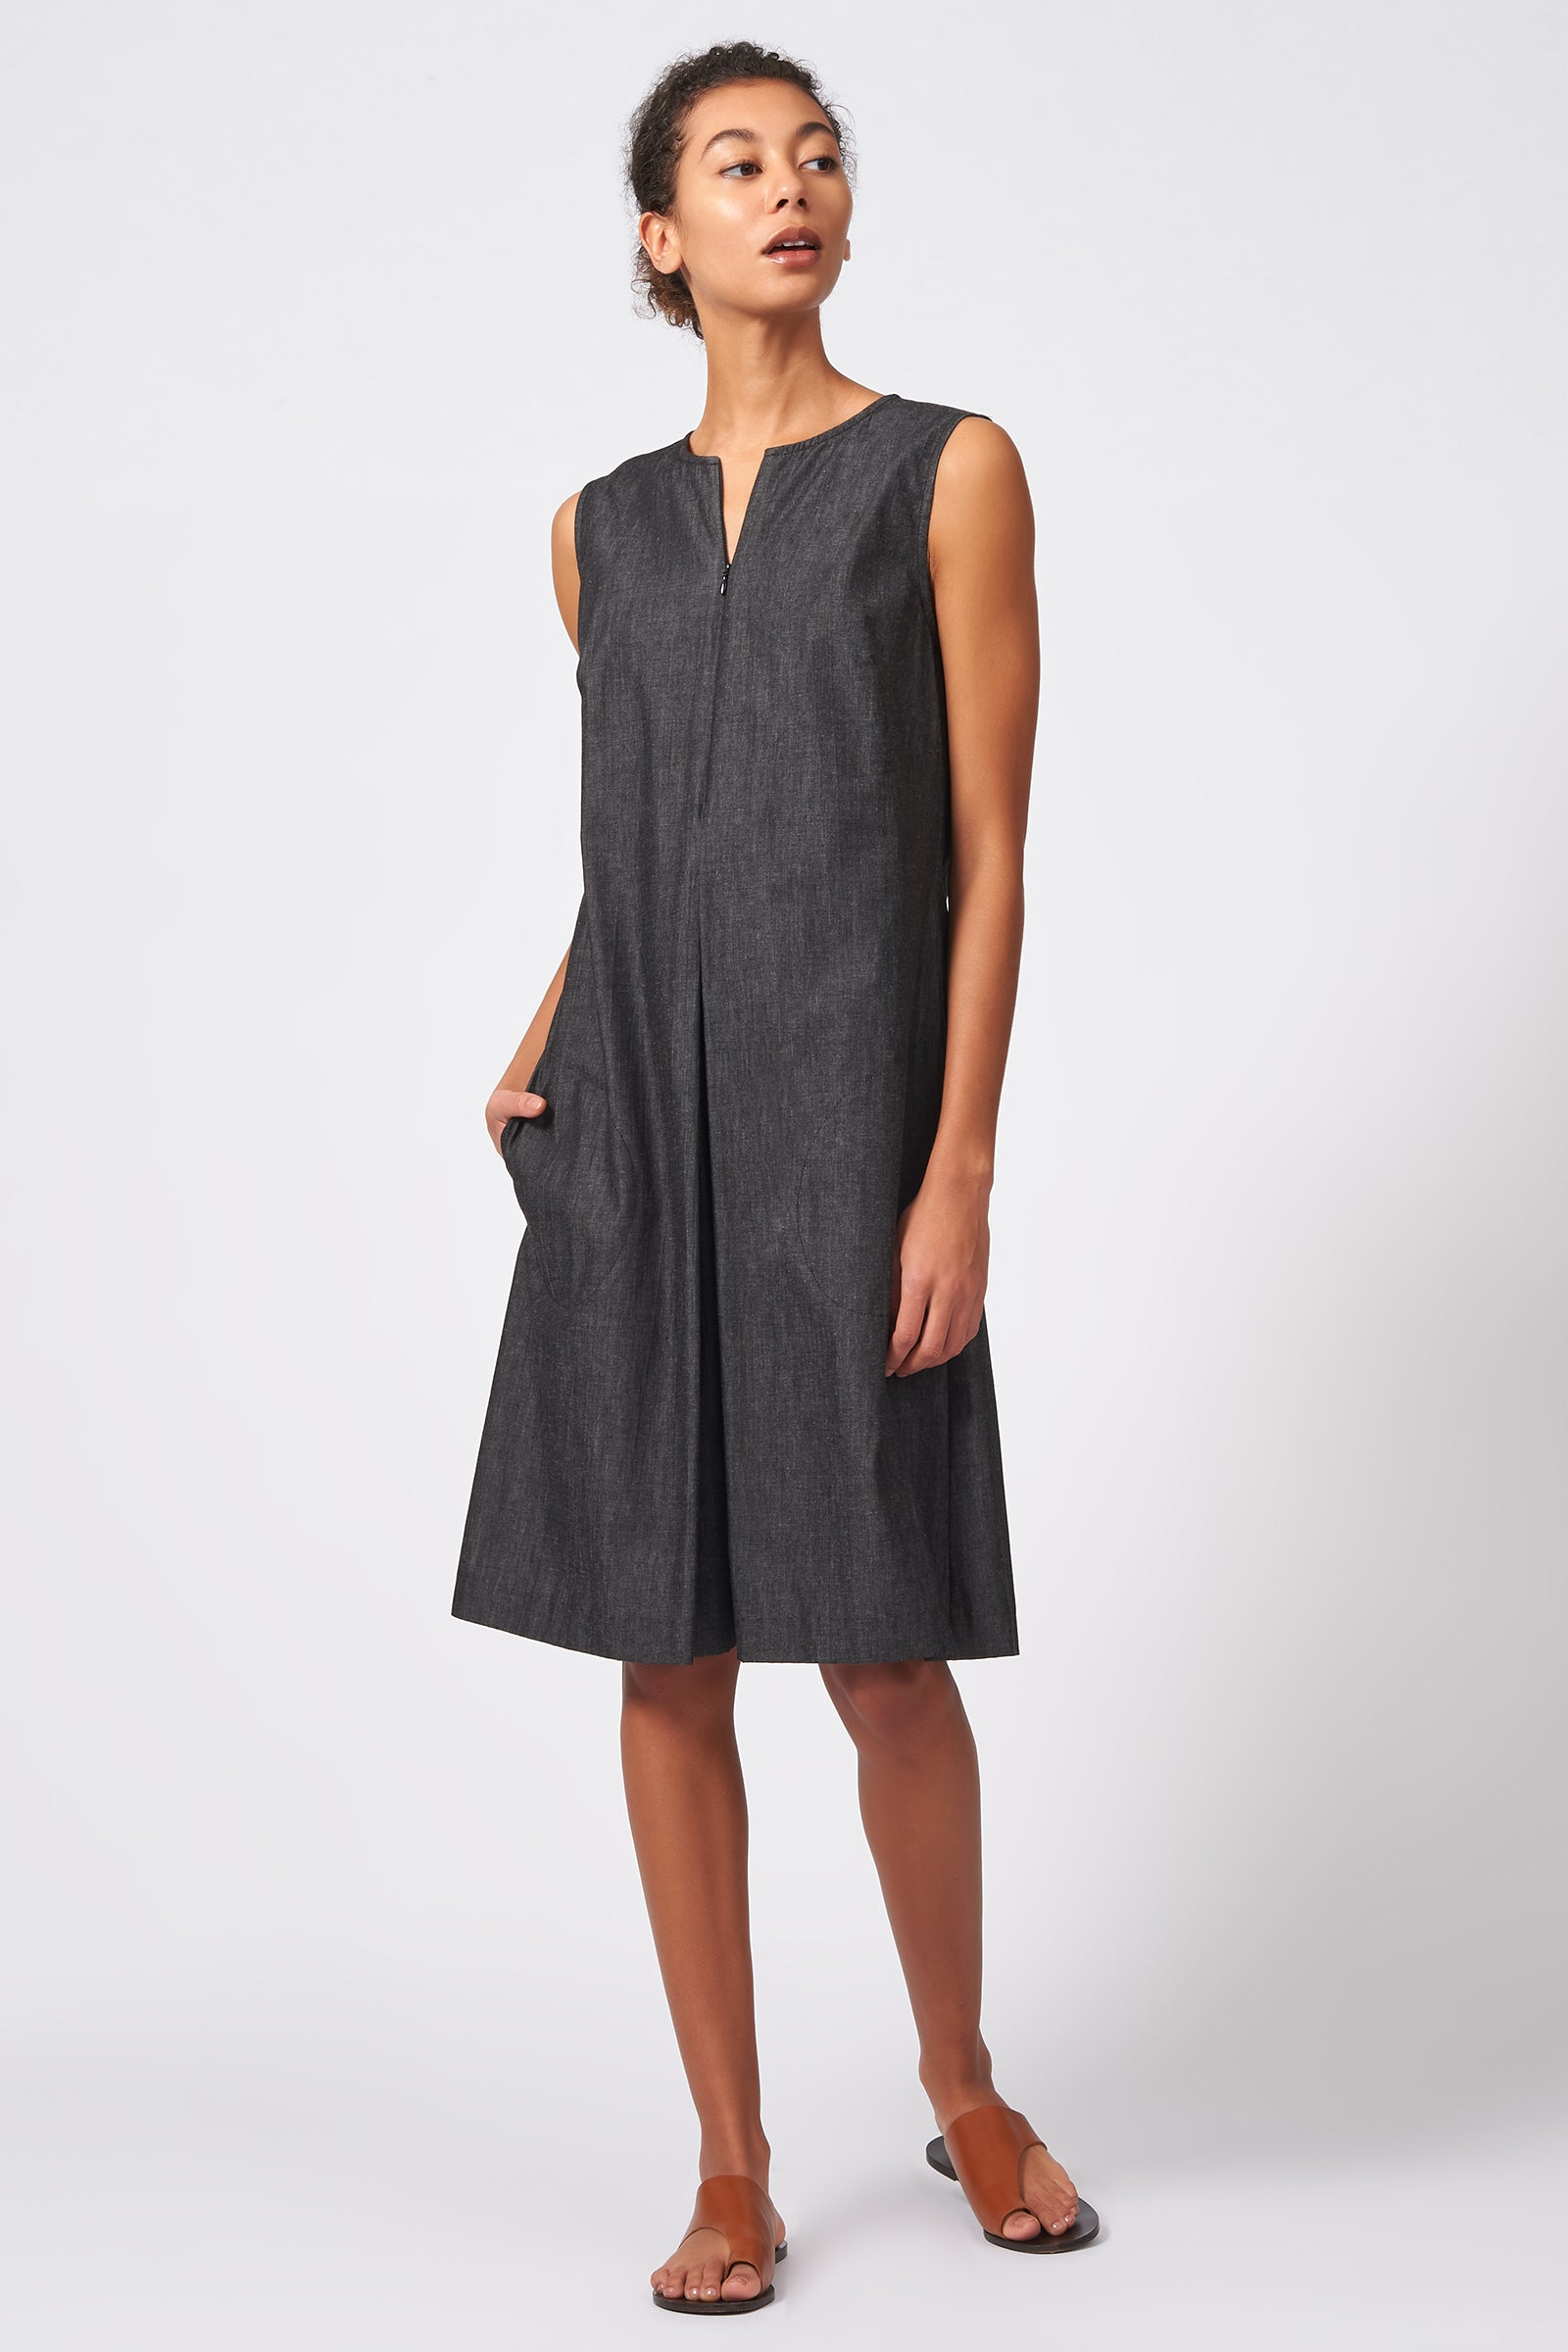 Kal Rieman Pleat Front Zip Dress in Dark Denim on Model Full Front View